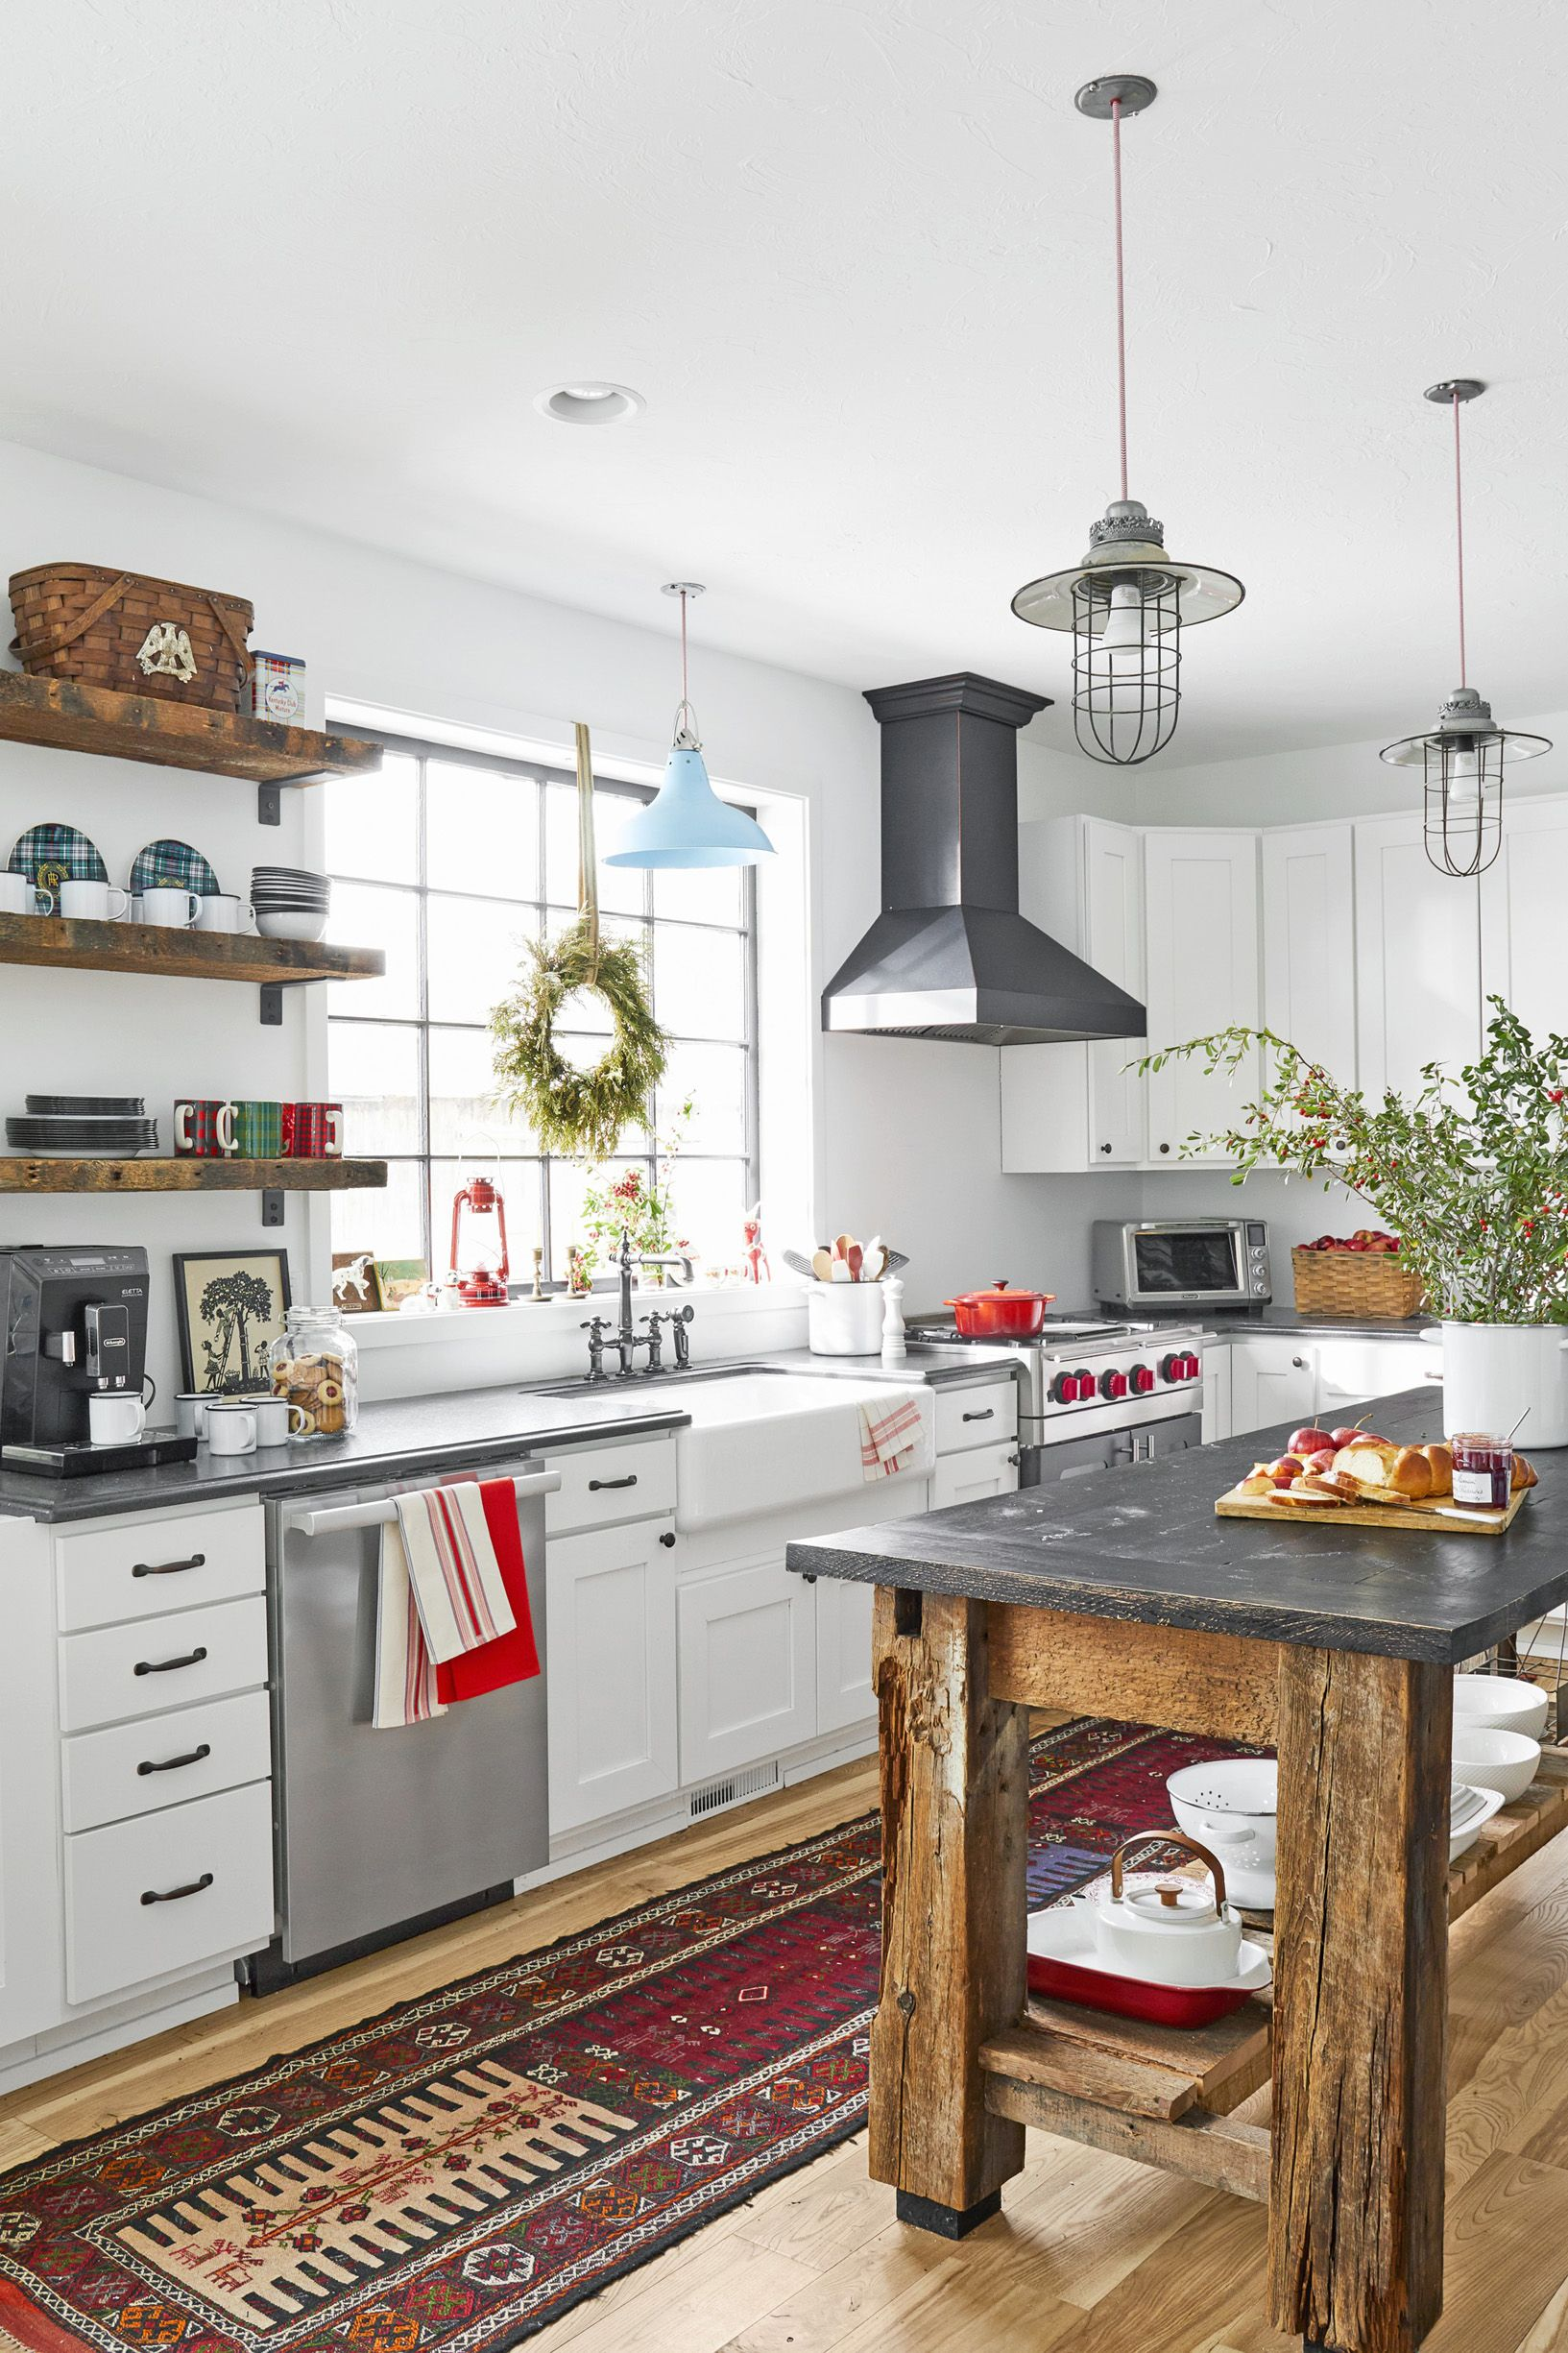 18 Ideas for Decorating Above Kitchen Cabinets - Design for ... on decorating tips above kitchen cabinets, interior decorating above kitchen cabinets, wasted space above kitchen cabinets,